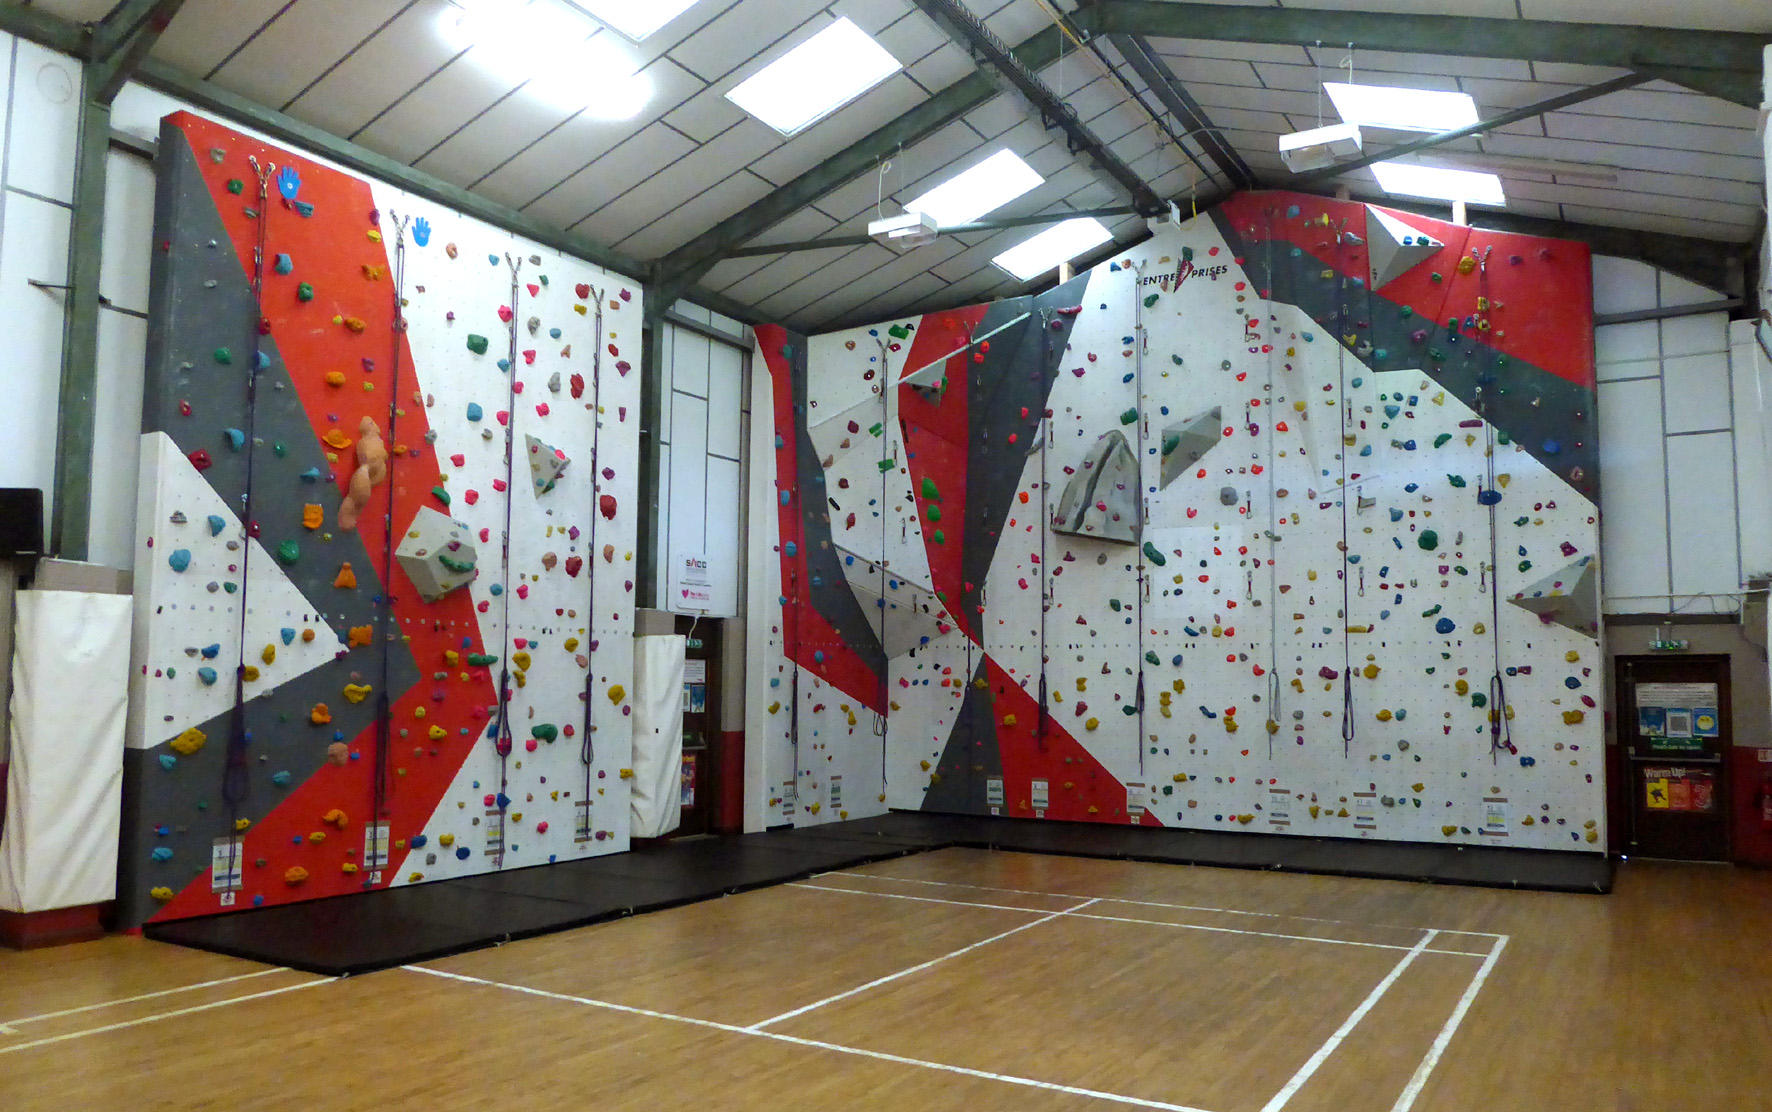 The Morley Climbing Wall